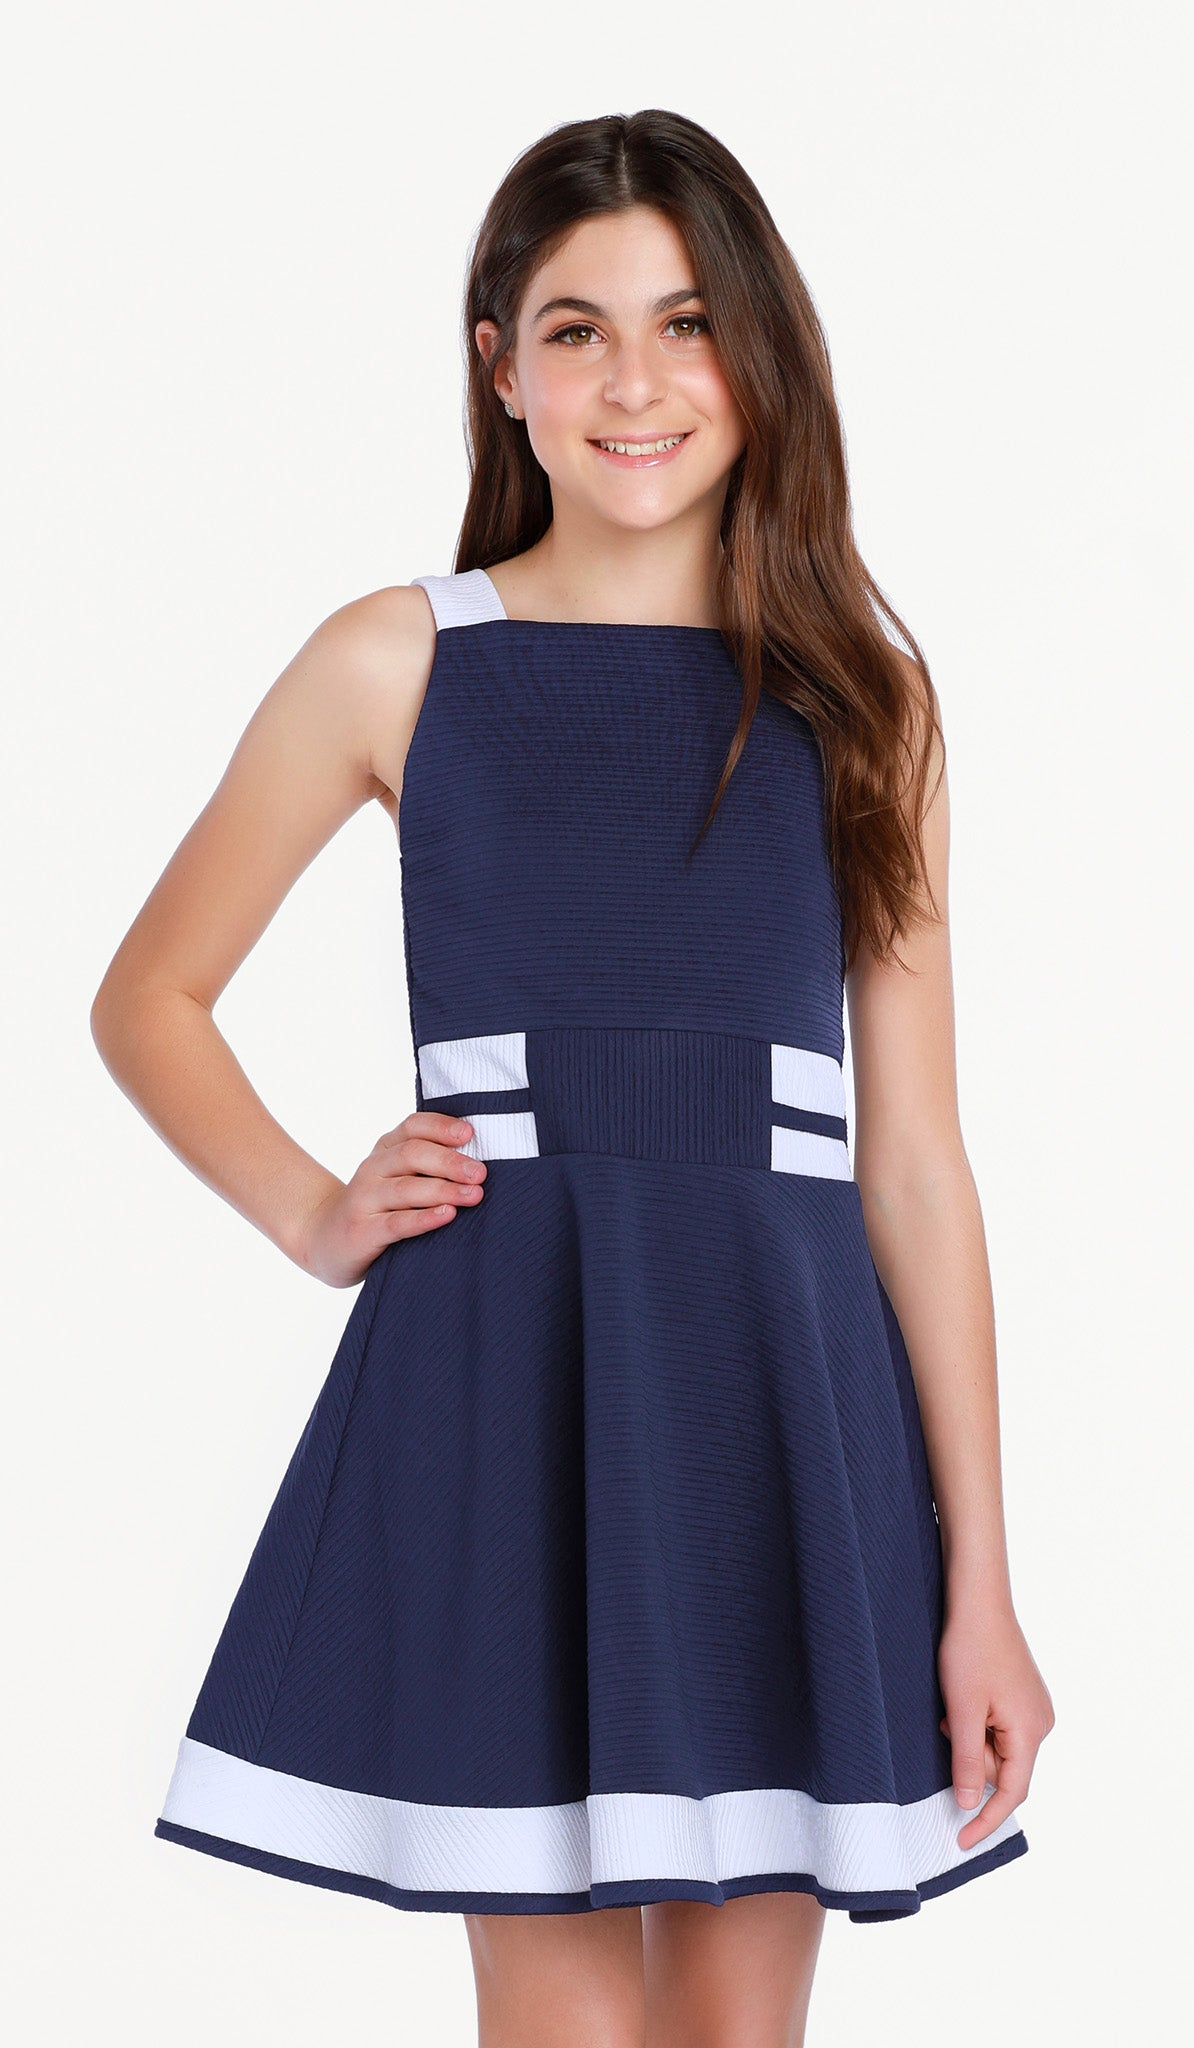 THE BRIDGET DRESS - Sallymiller.com - [variant title] - | Event & Party Dresses for Tween Girls & Juniors | Weddings Dresses, Bat Mitzvah Dresses, Sweet Sixteen Dresses, Graduation Dresses, Birthday Party Dresses, Bar Mitzvah Dresses, Cotillion Dresses